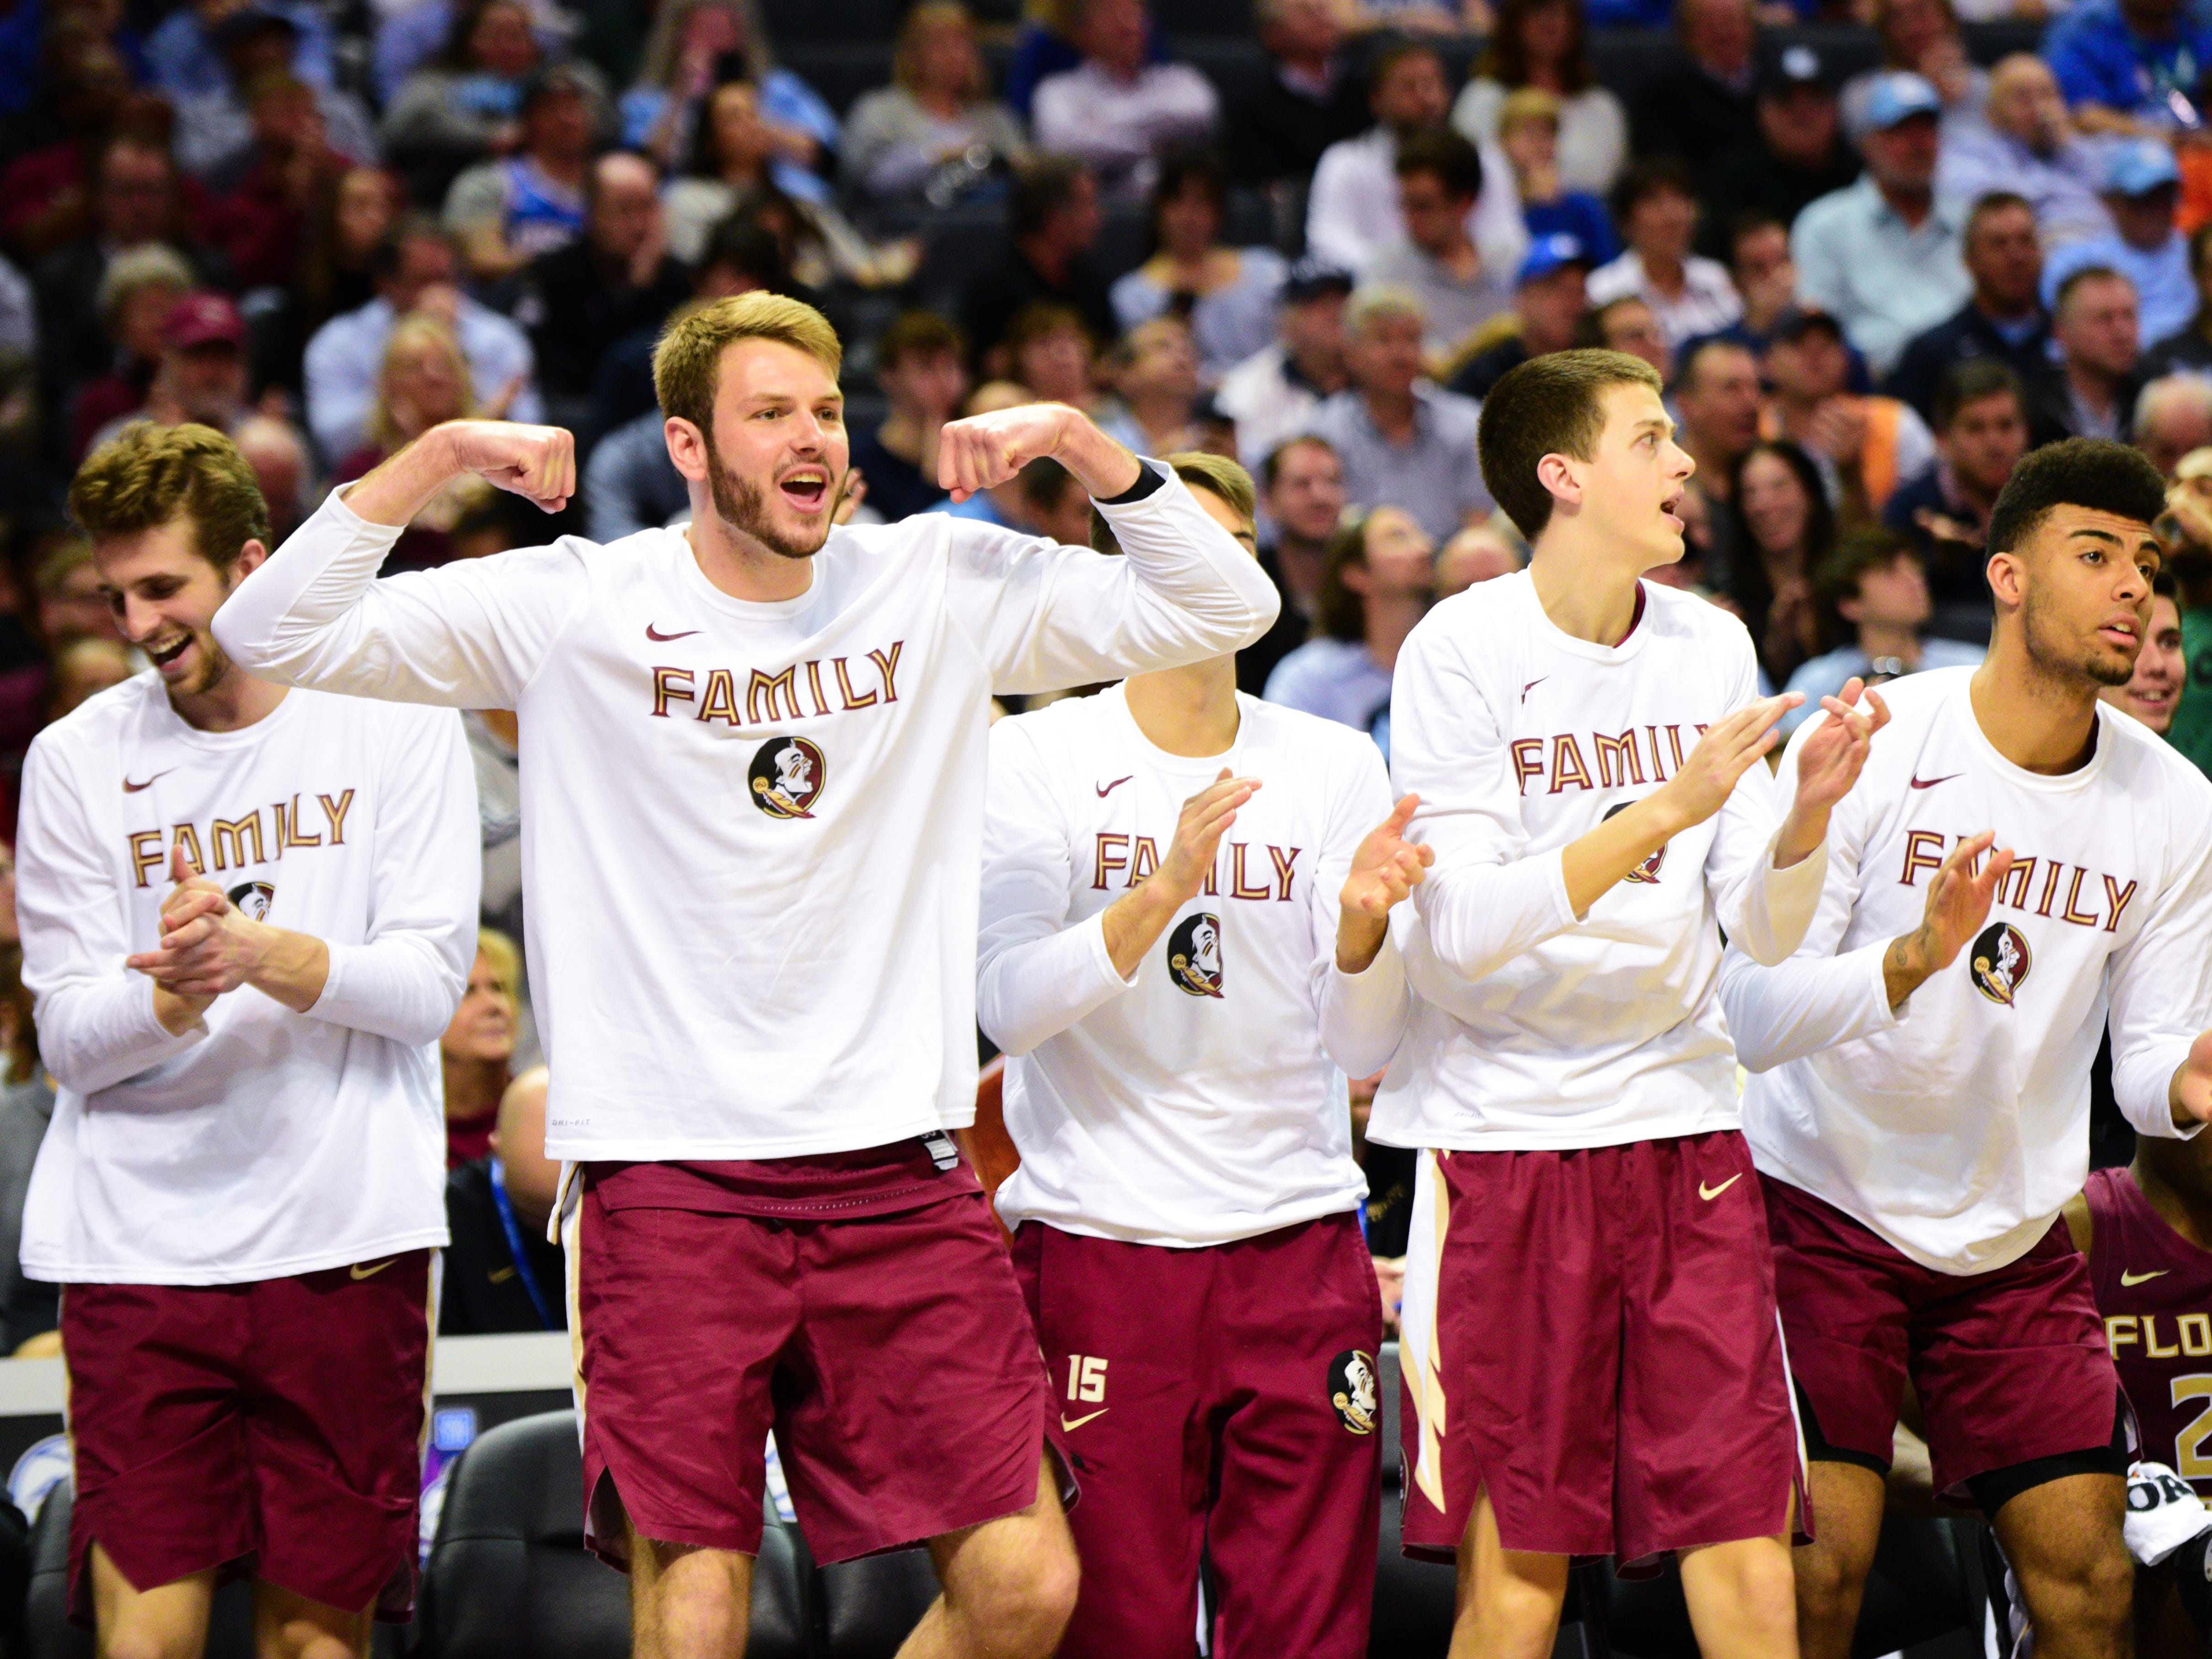 The Florida State bench celebrates taking a large lead during the second half of the ACC Tournament Semifinals at the Spectrum Center in Charlotte on Friday.